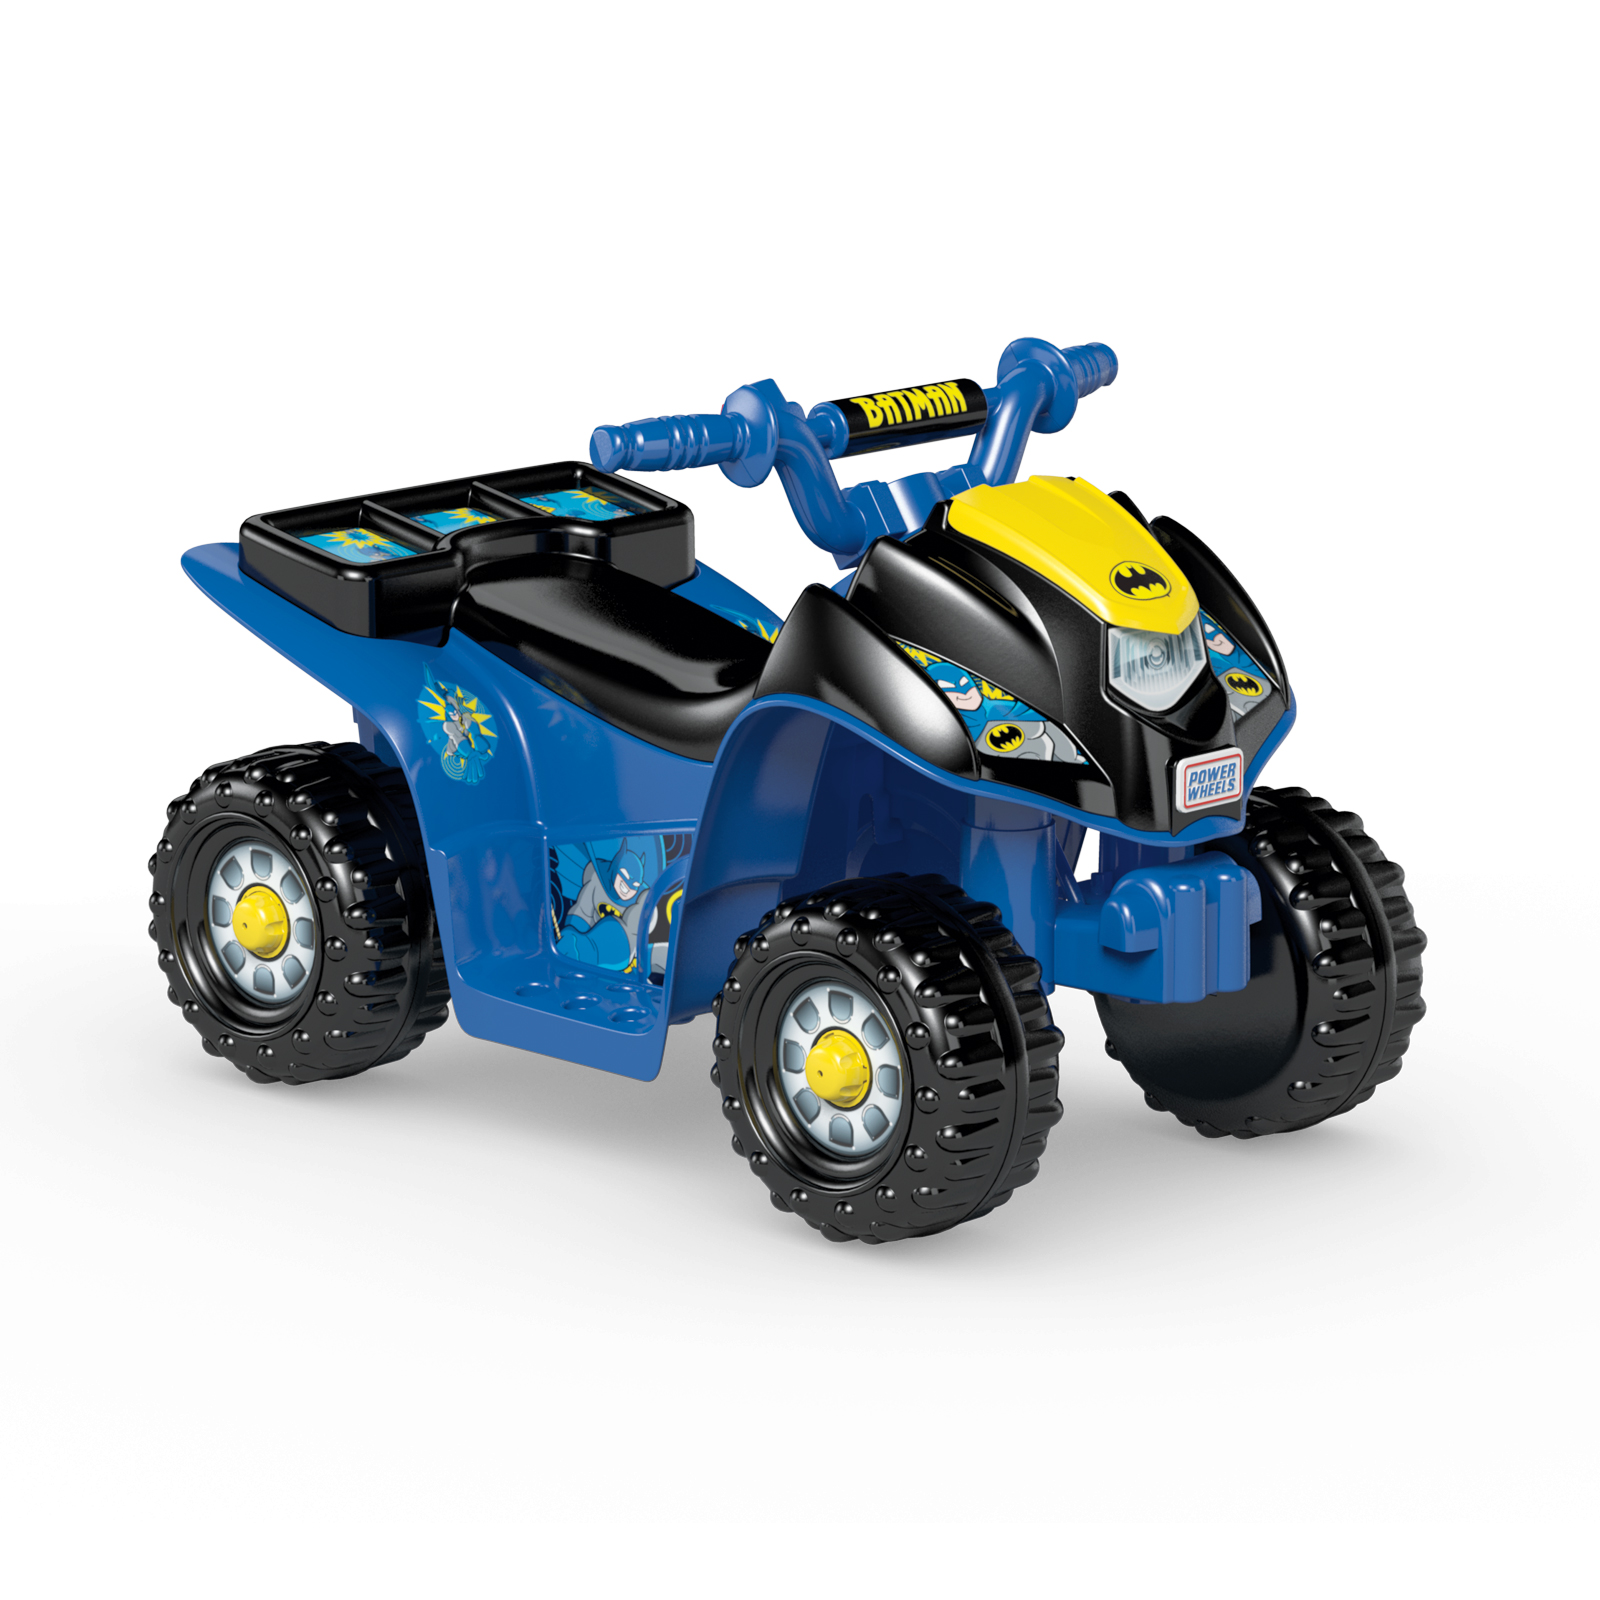 Power Wheels Ride On Toys